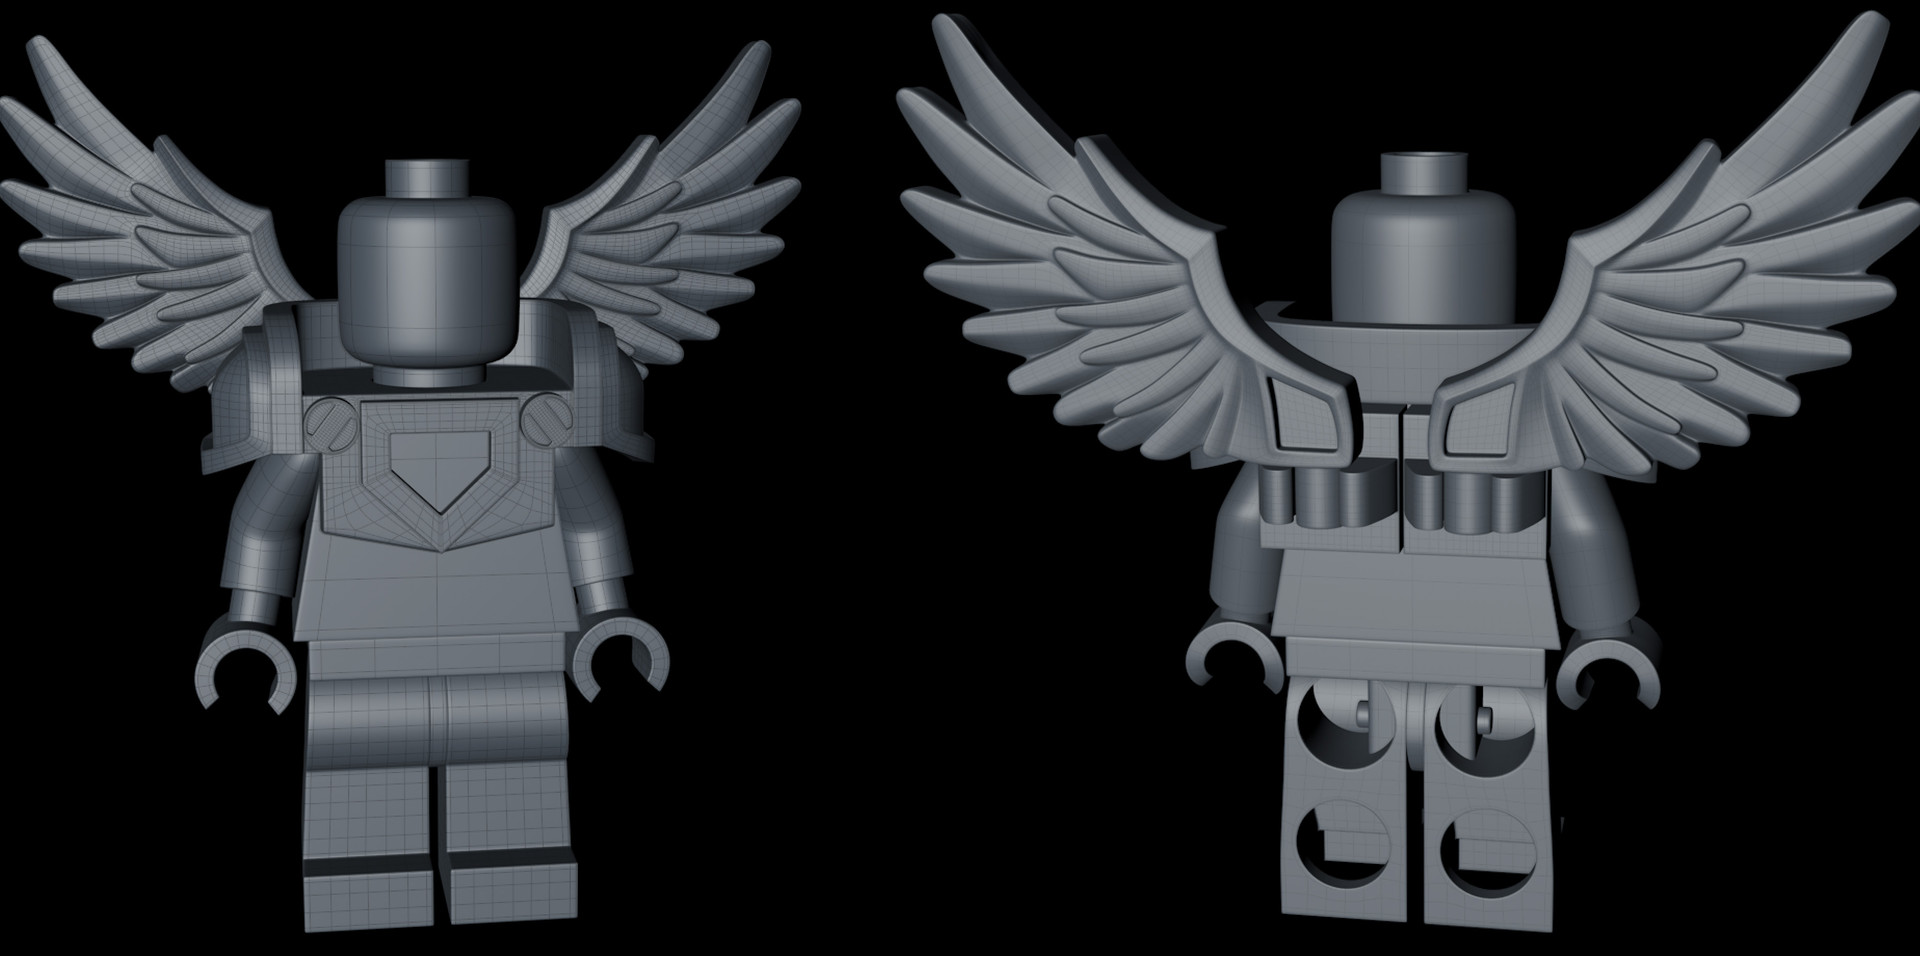 The head started out as a Cylinder object and the torso as a Cube object. Starting to look good with the wings in place!